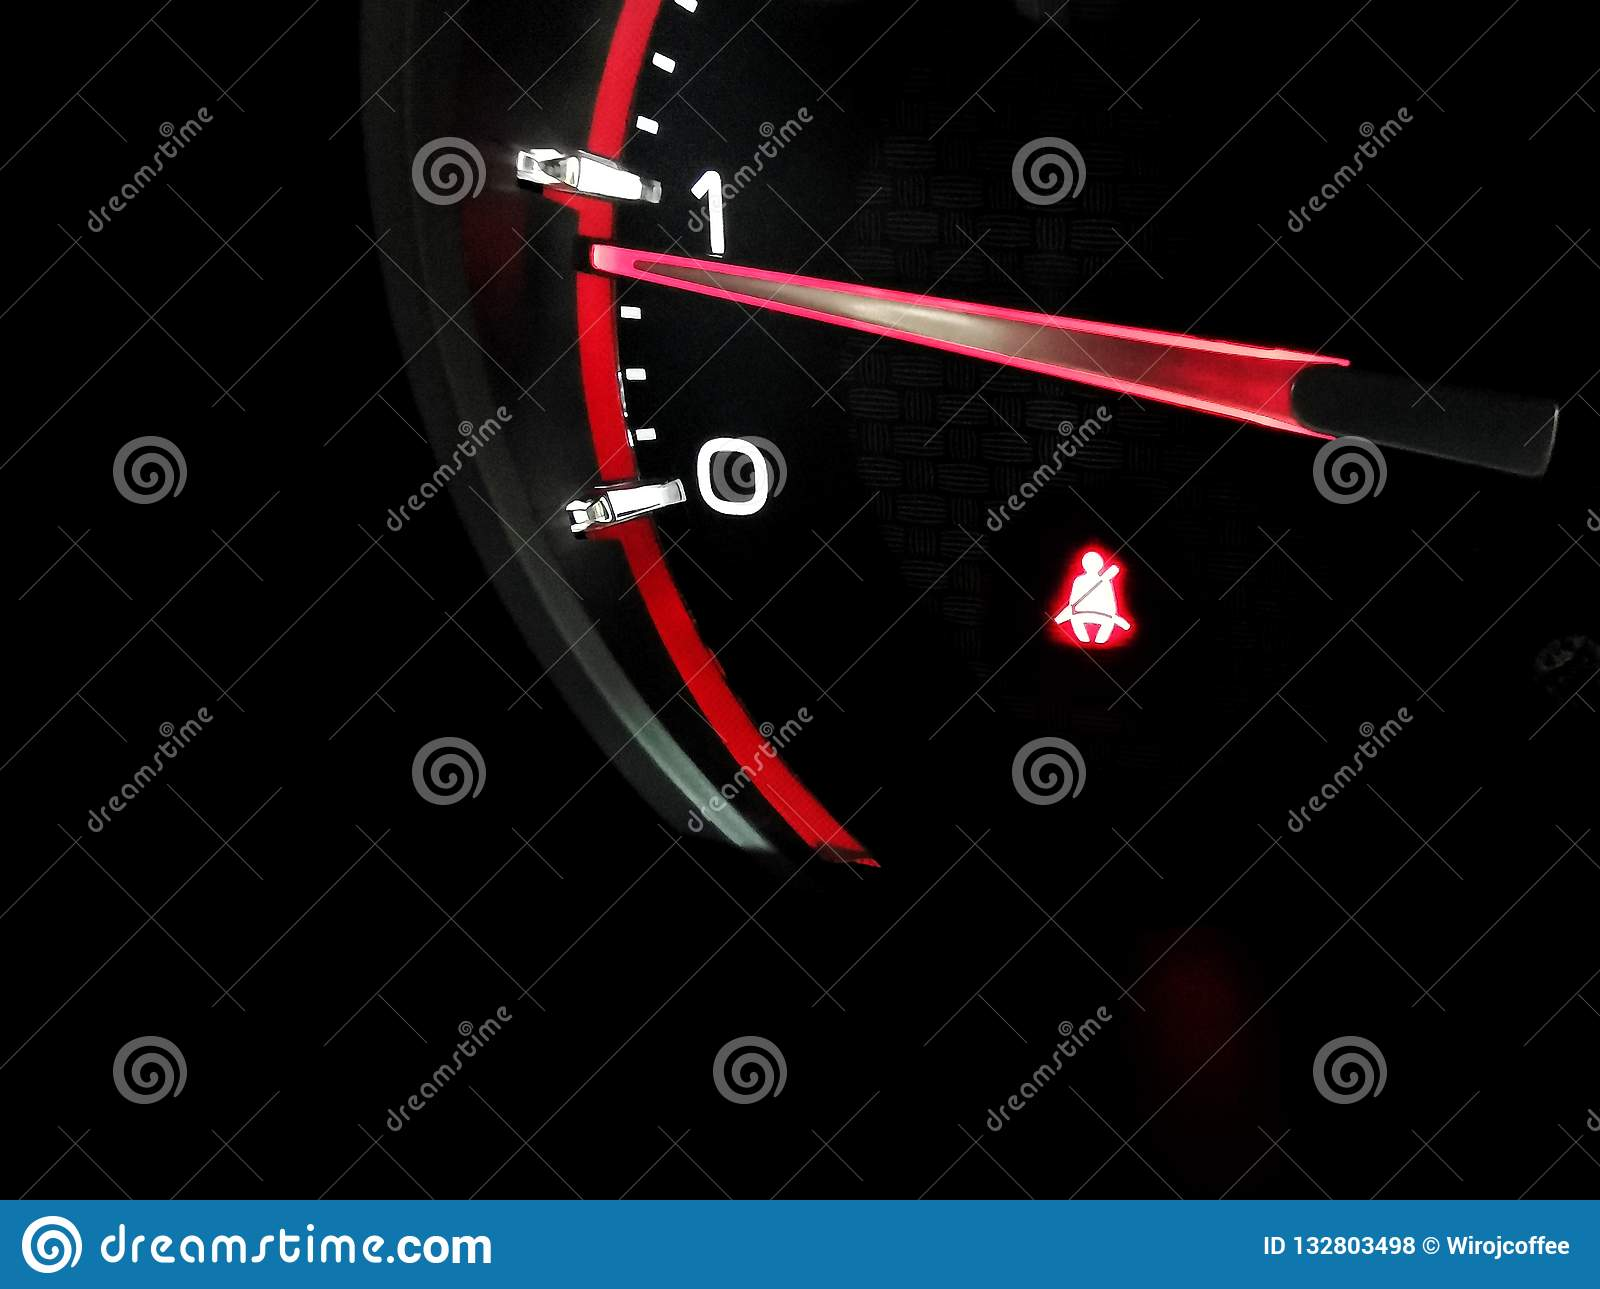 Seat Belts Light Icon On Car Dashboard Of Truck Car